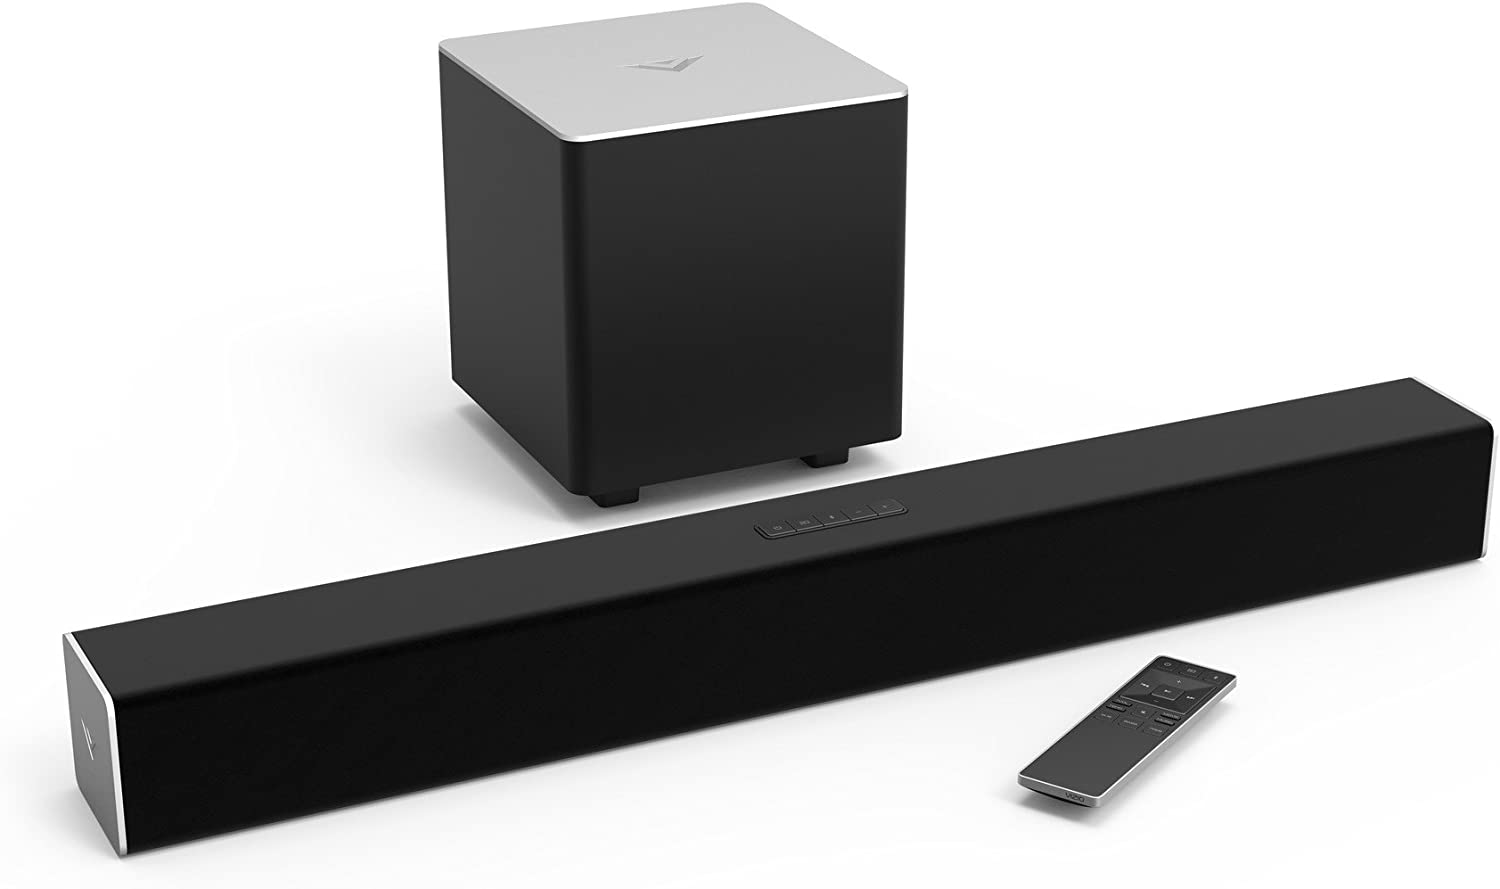 REPLACEMENT Subwoofer ONLY for the VIZIO SB3821-C6 38 Inch 2.1 Sound Bar Spea...